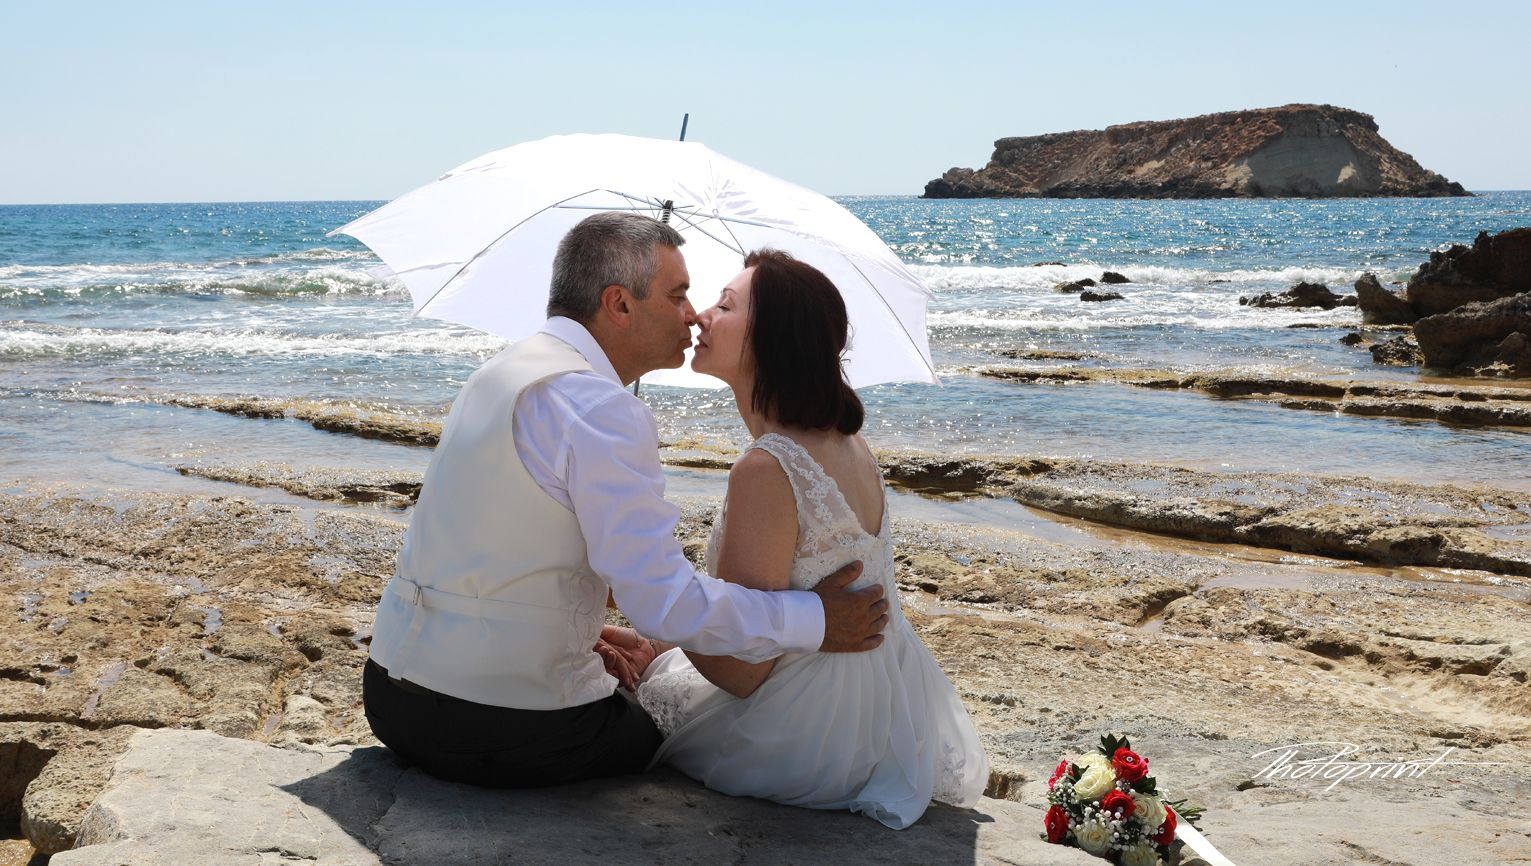 Affordable Wedding Photographer Peyia Municipality Paphos Cyprus My Photo Shooting Style Is U Affordable Wedding Photographer Underwater Wedding Cyprus Wedding